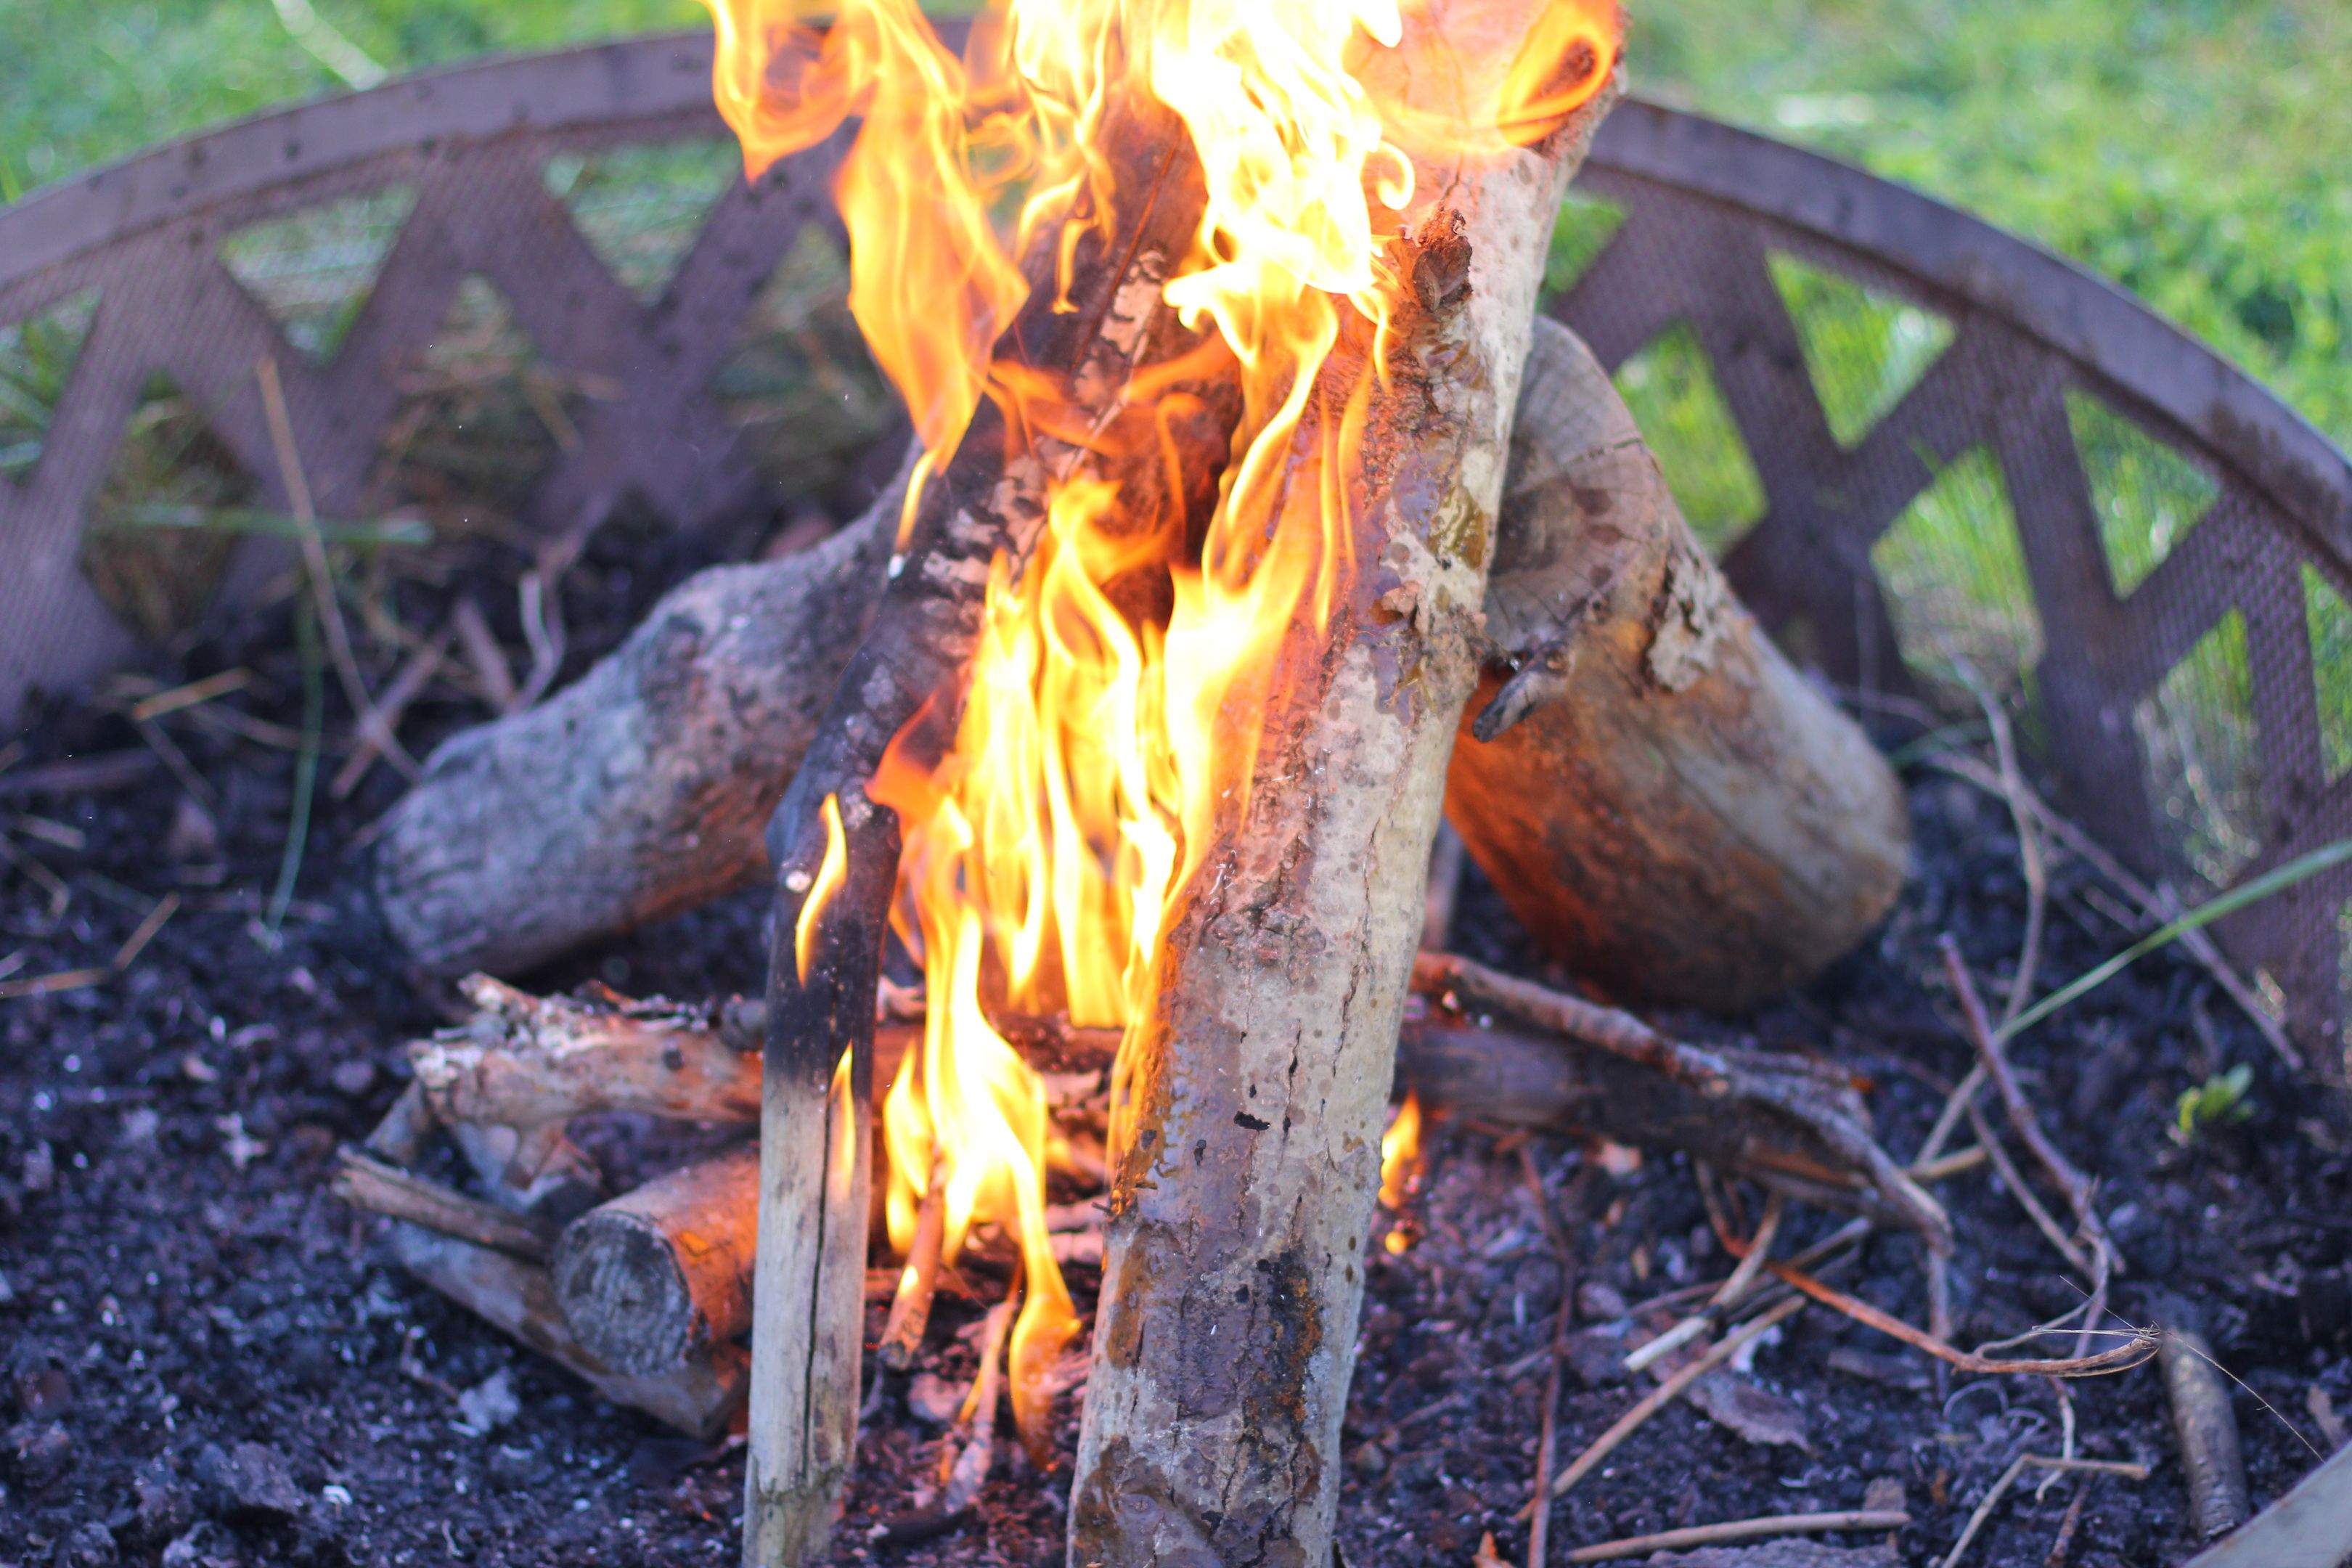 How To Start A Fire In A Fire Pit Hunker Fire Pit Outdoor Fire Pit Fire Pit Backyard